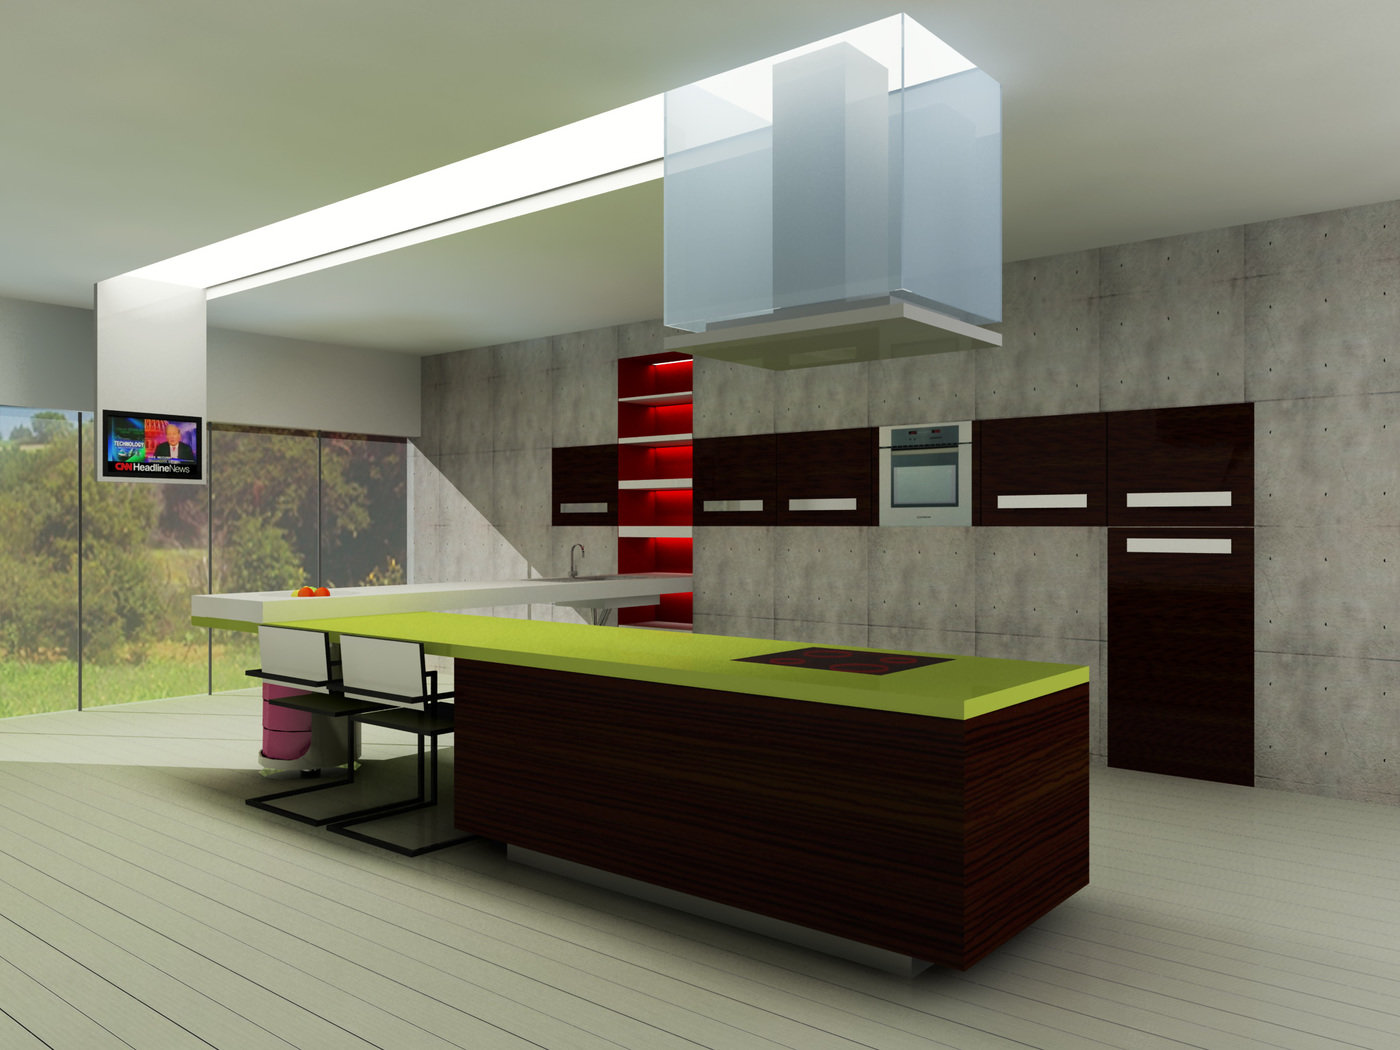 Silverline Kitchen Design Competition 2nd Prize by Selami Yilmaz at ...